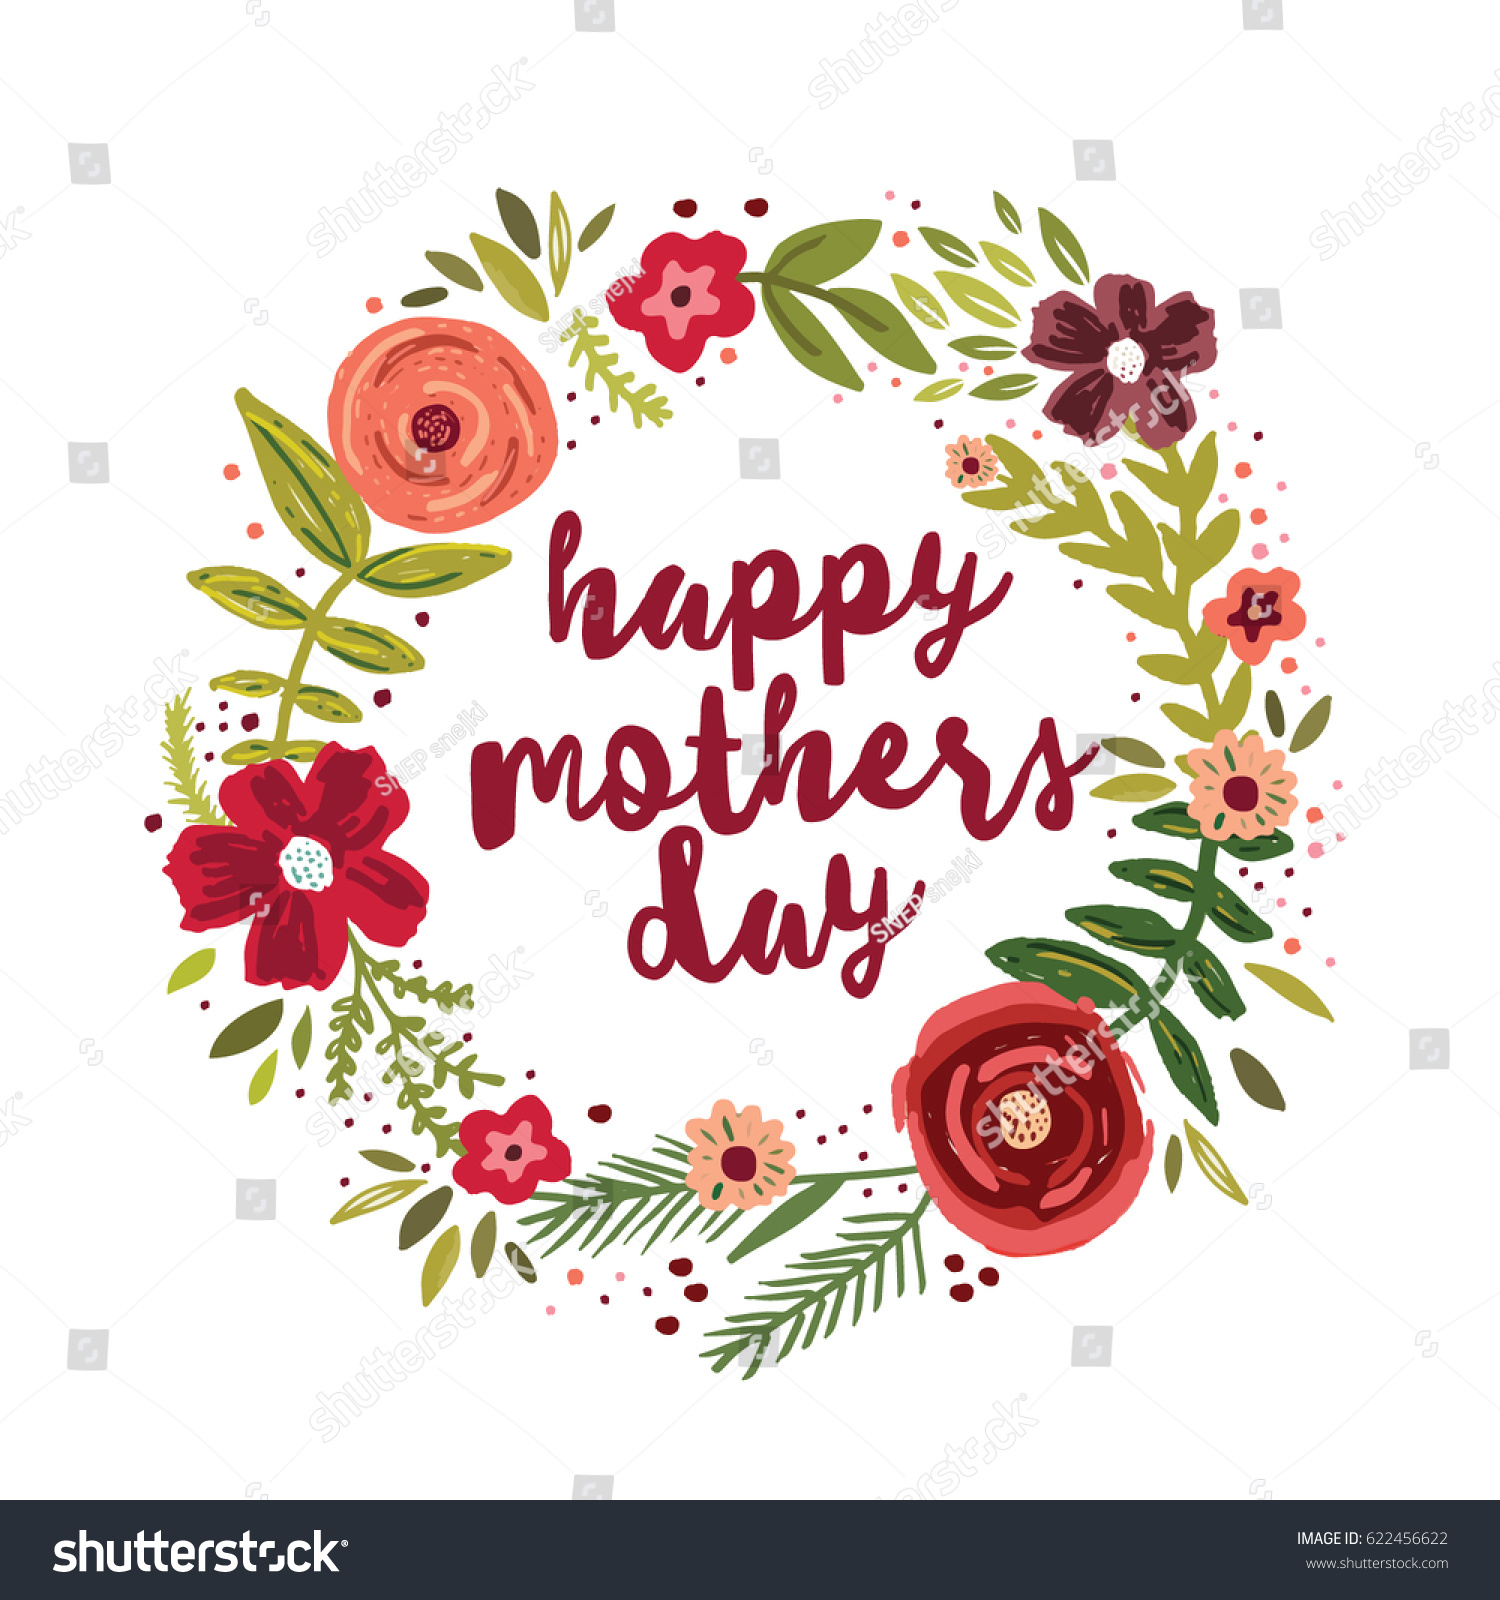 Happy Mothers Day Greetings Card Stock Vector 622456622 Shutterstock